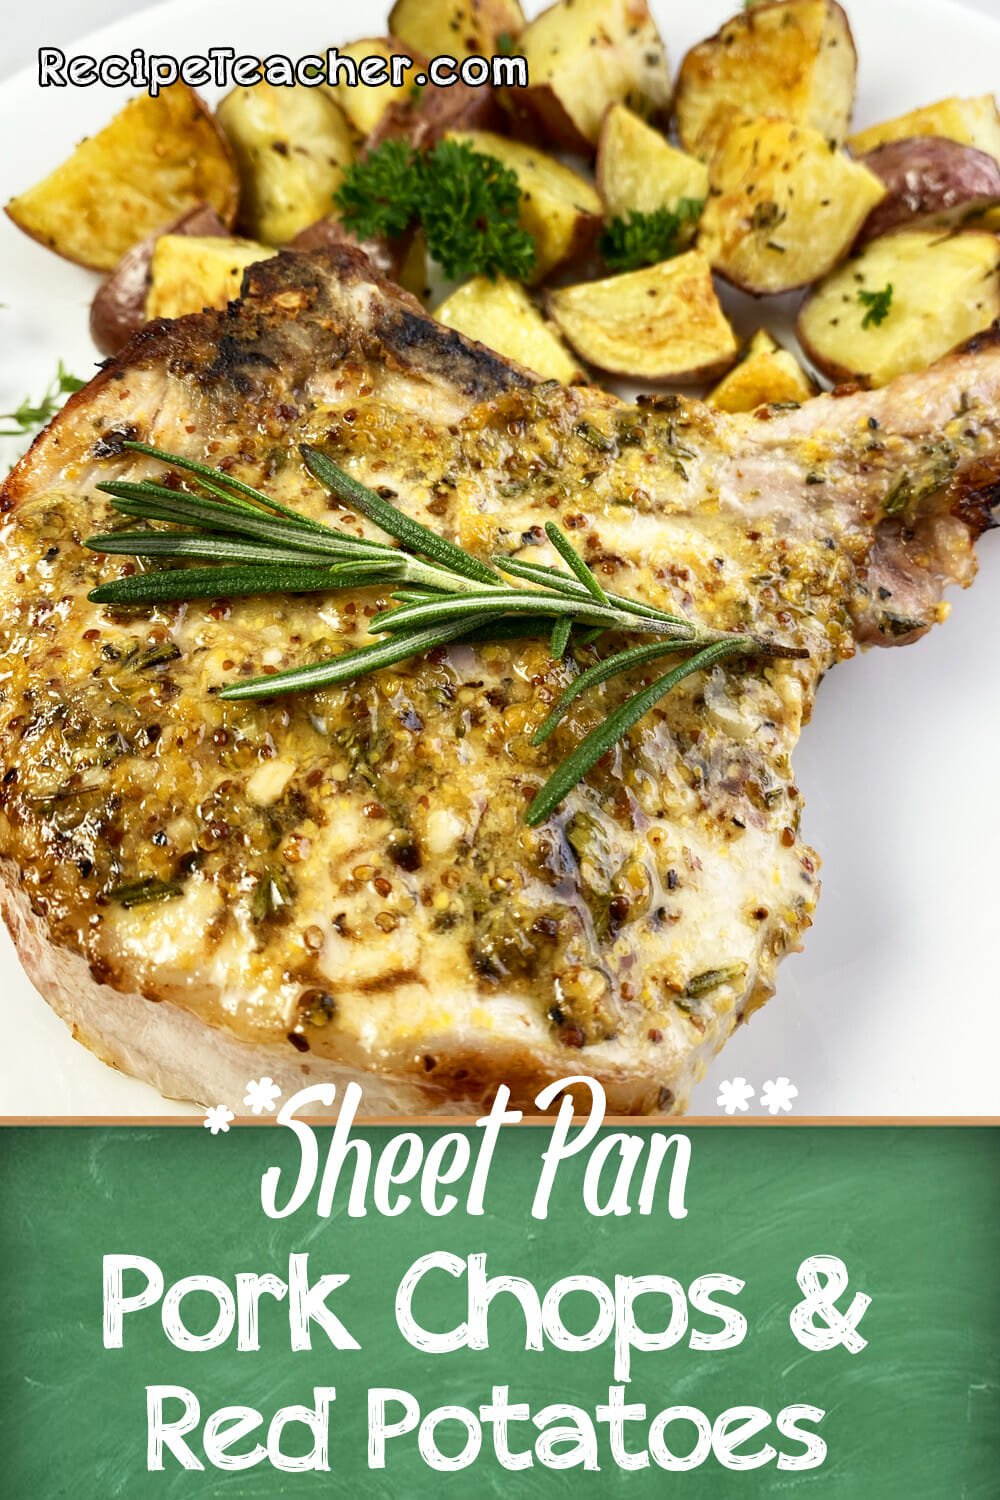 Recipe for sheet pan pork chops and baby red potatoes